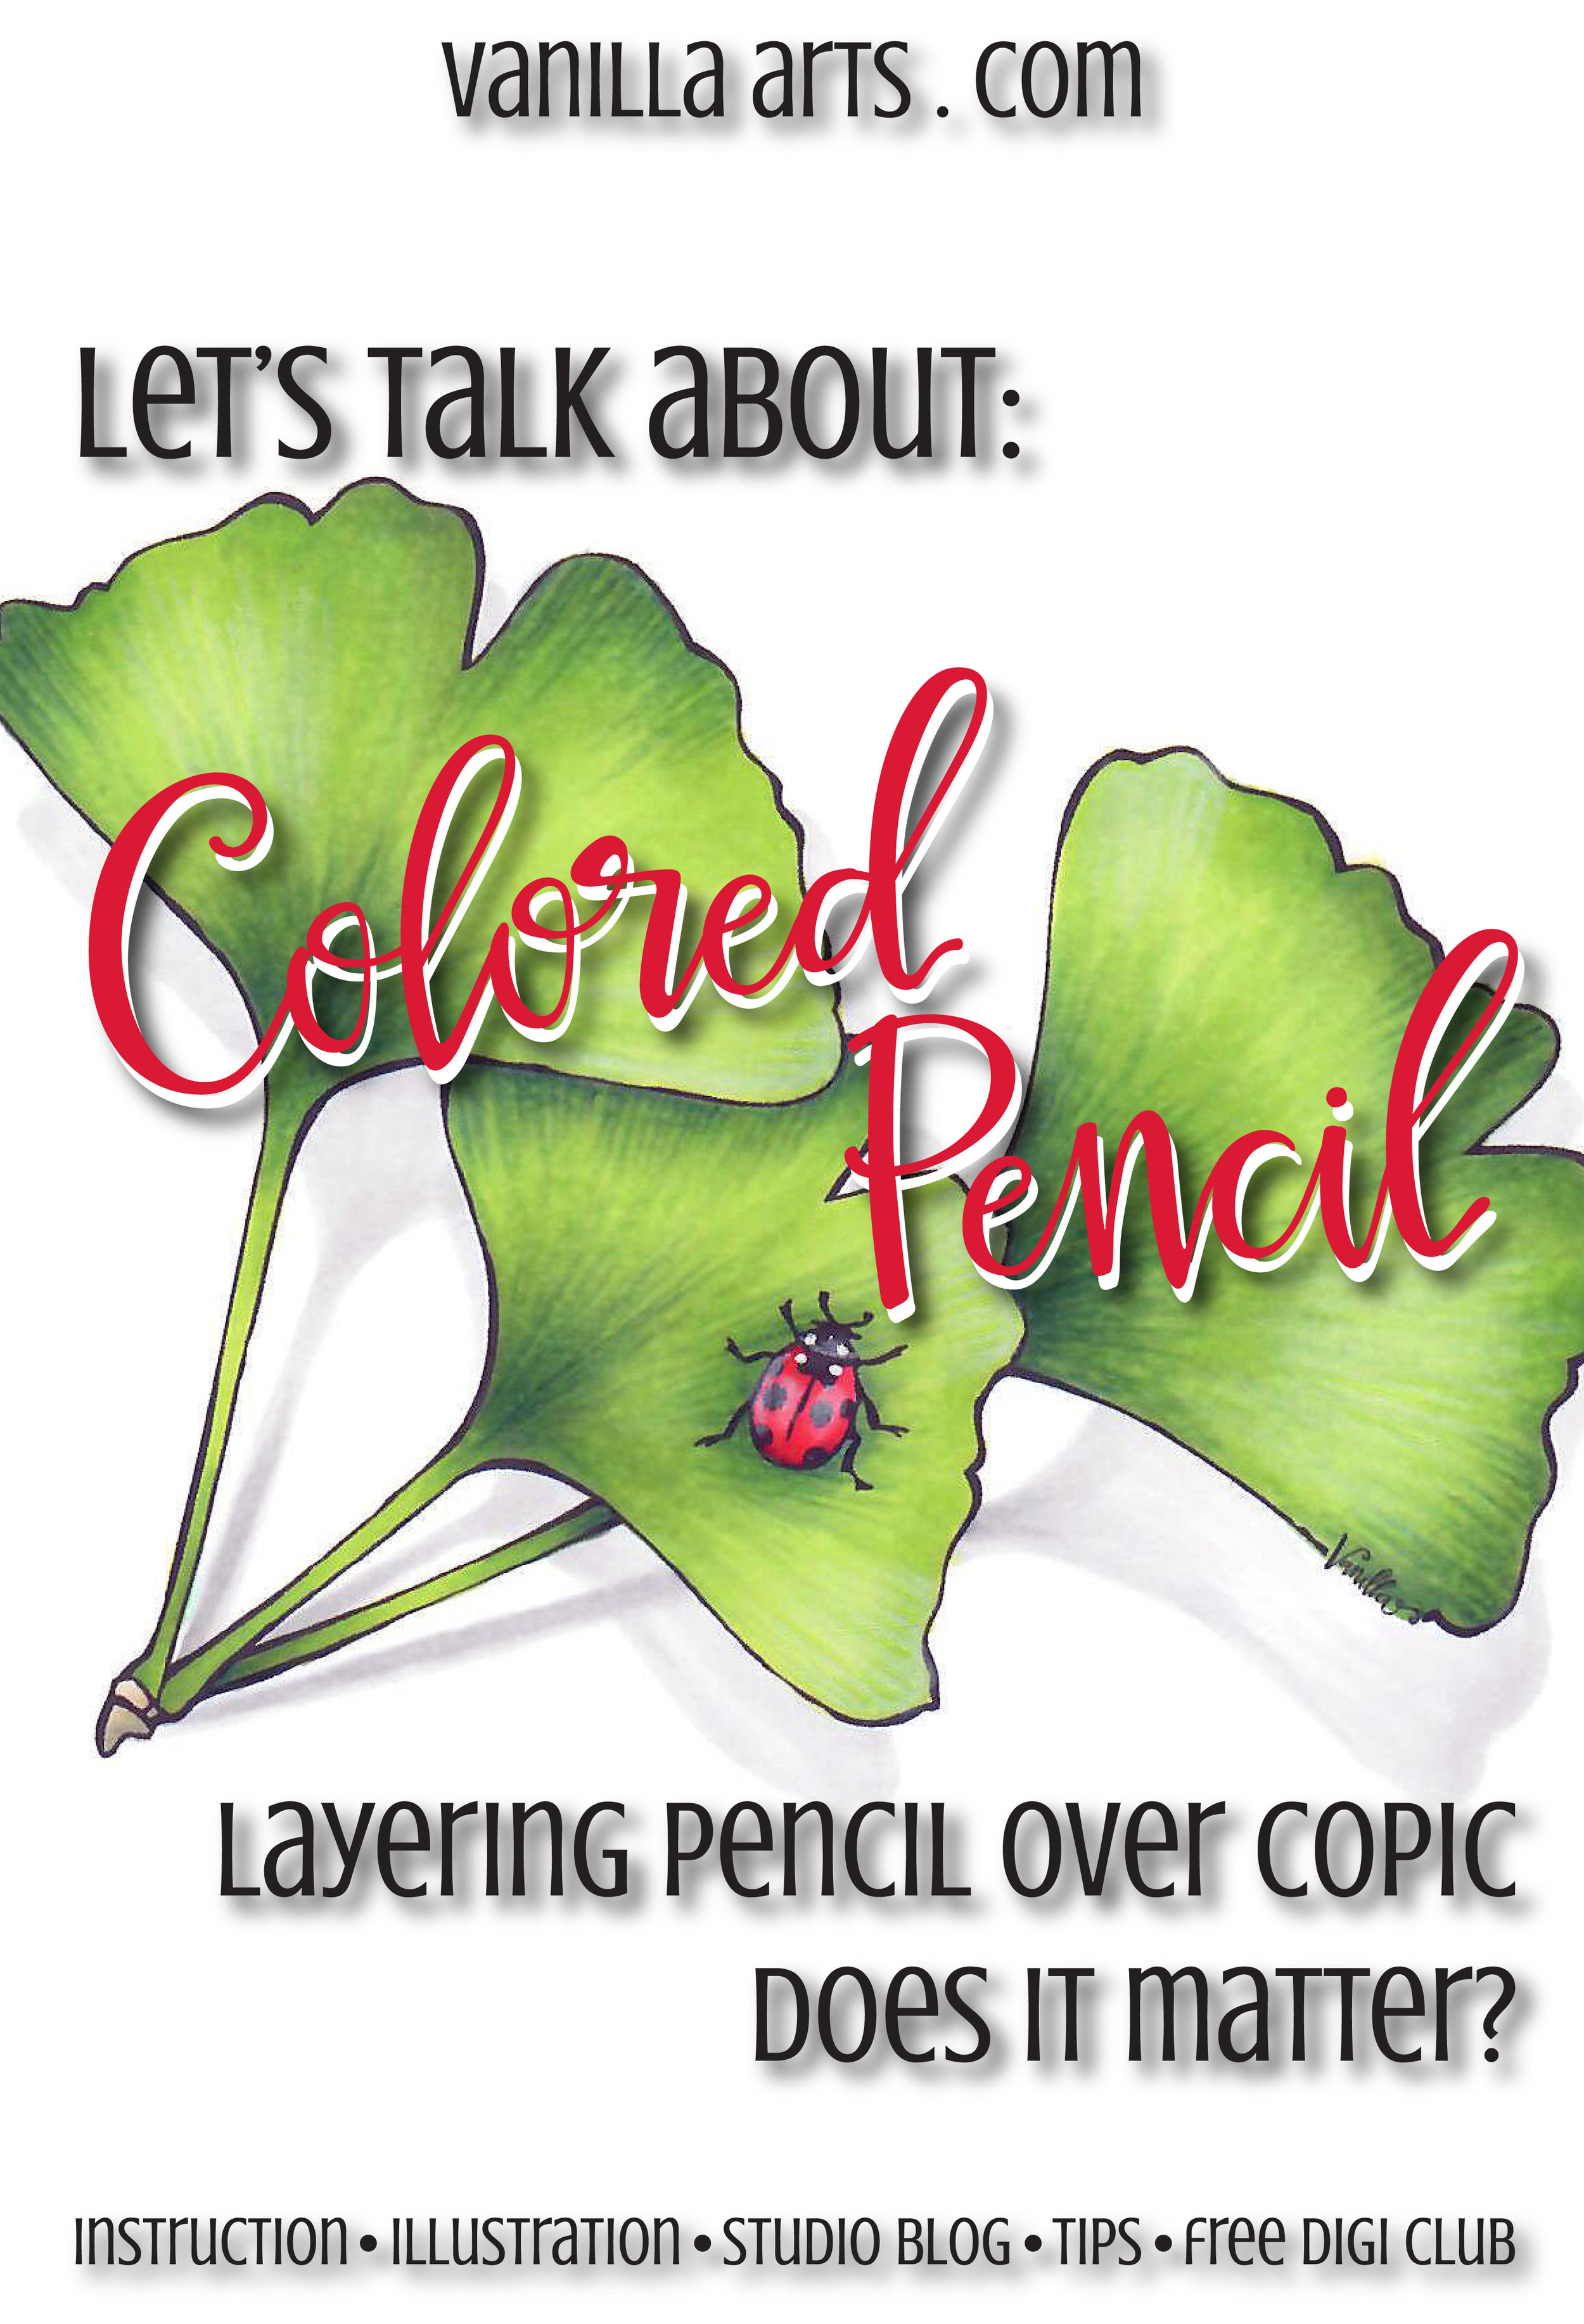 Layering colored pencil over your Copic coloring. Does it make a difference? | VanillaArts.com